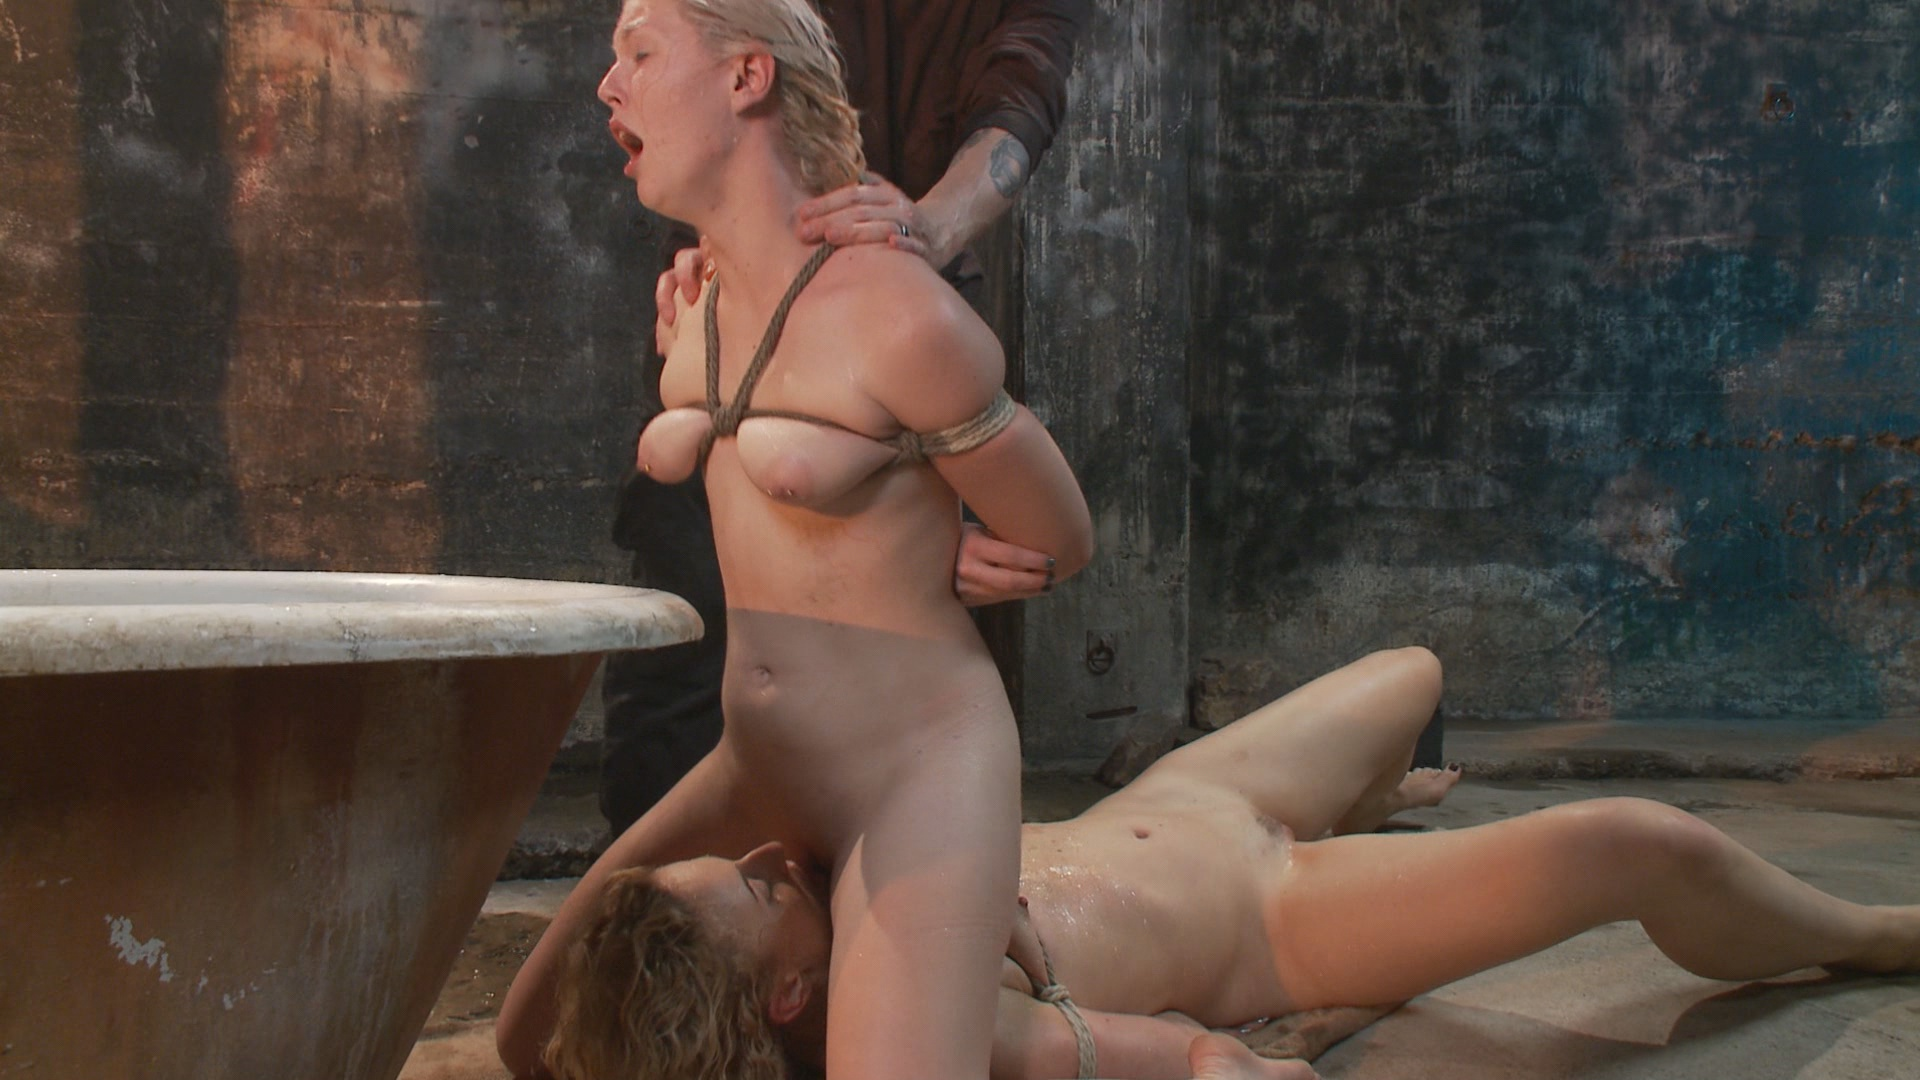 Sadistic Rope: 2 Whores Means Twice The Suffering xvideos181576